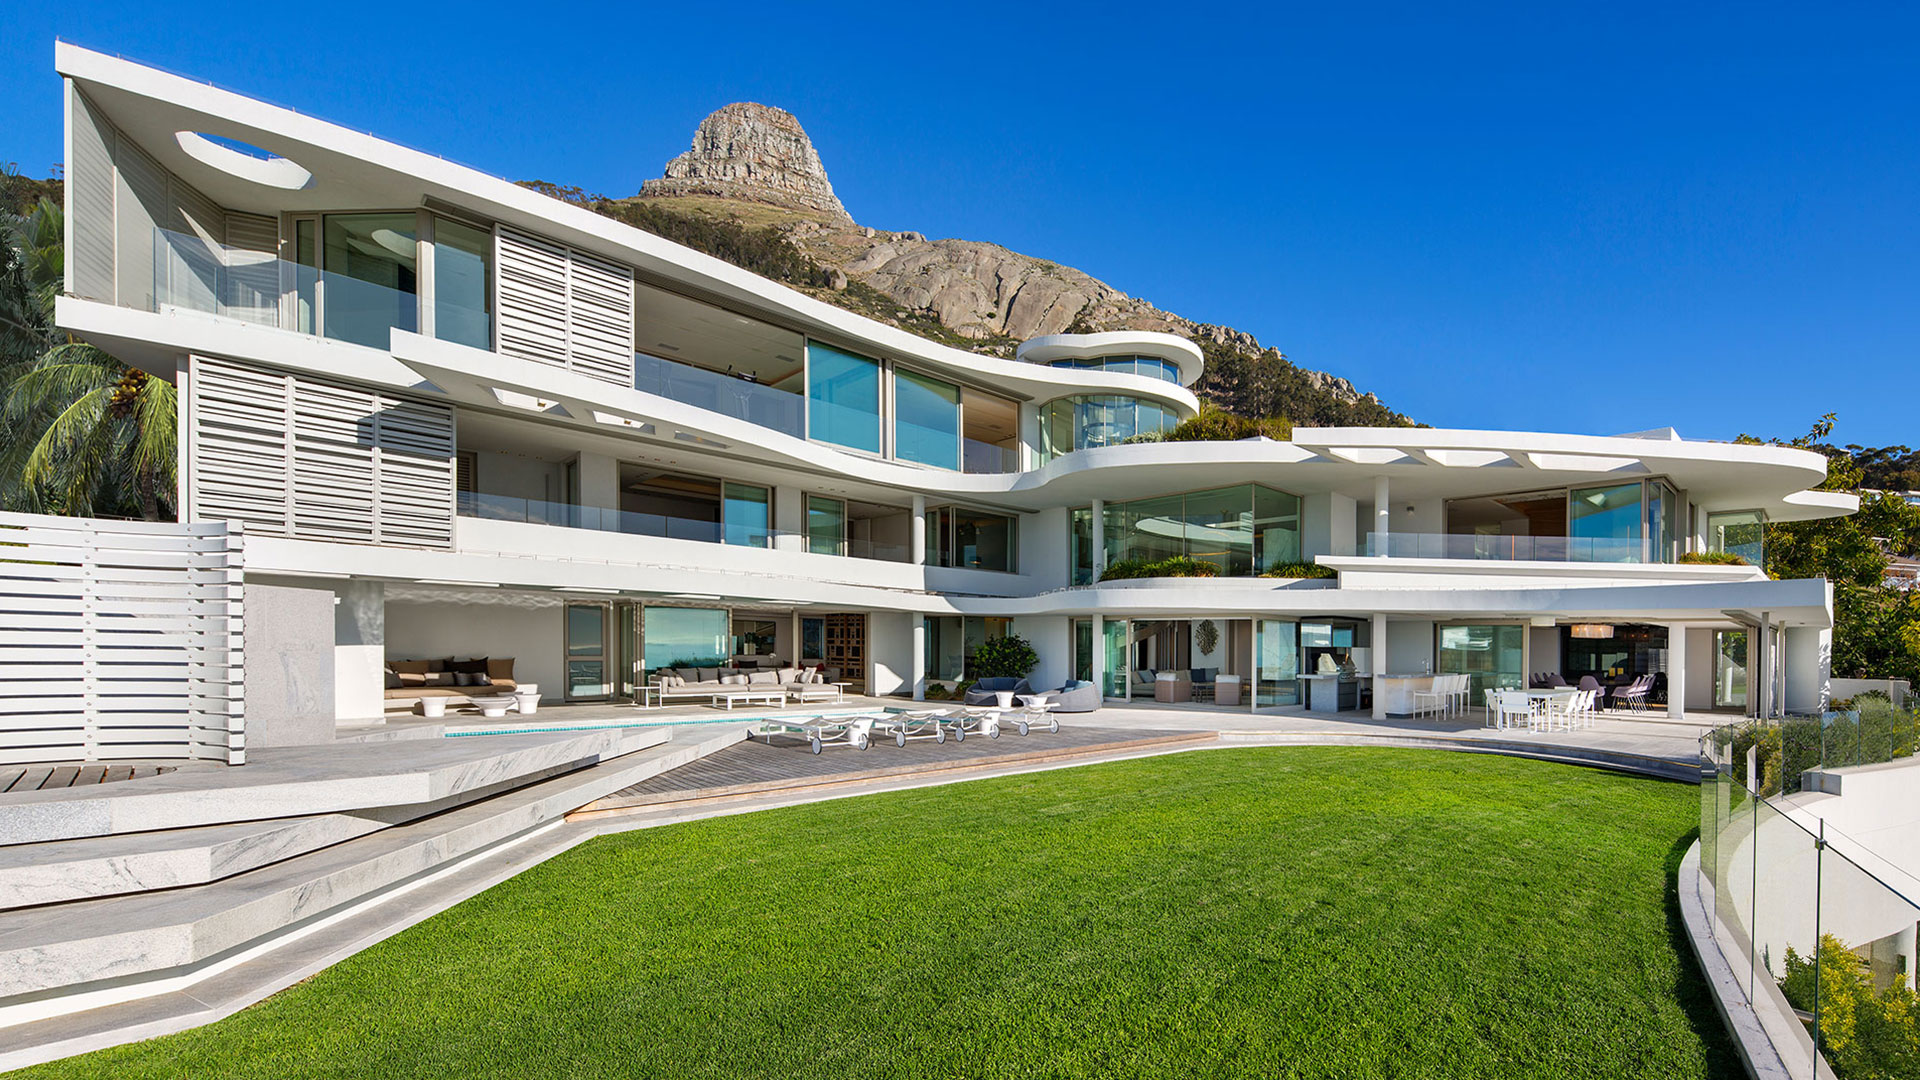 This Cape Town luxury house makes use of inventive design